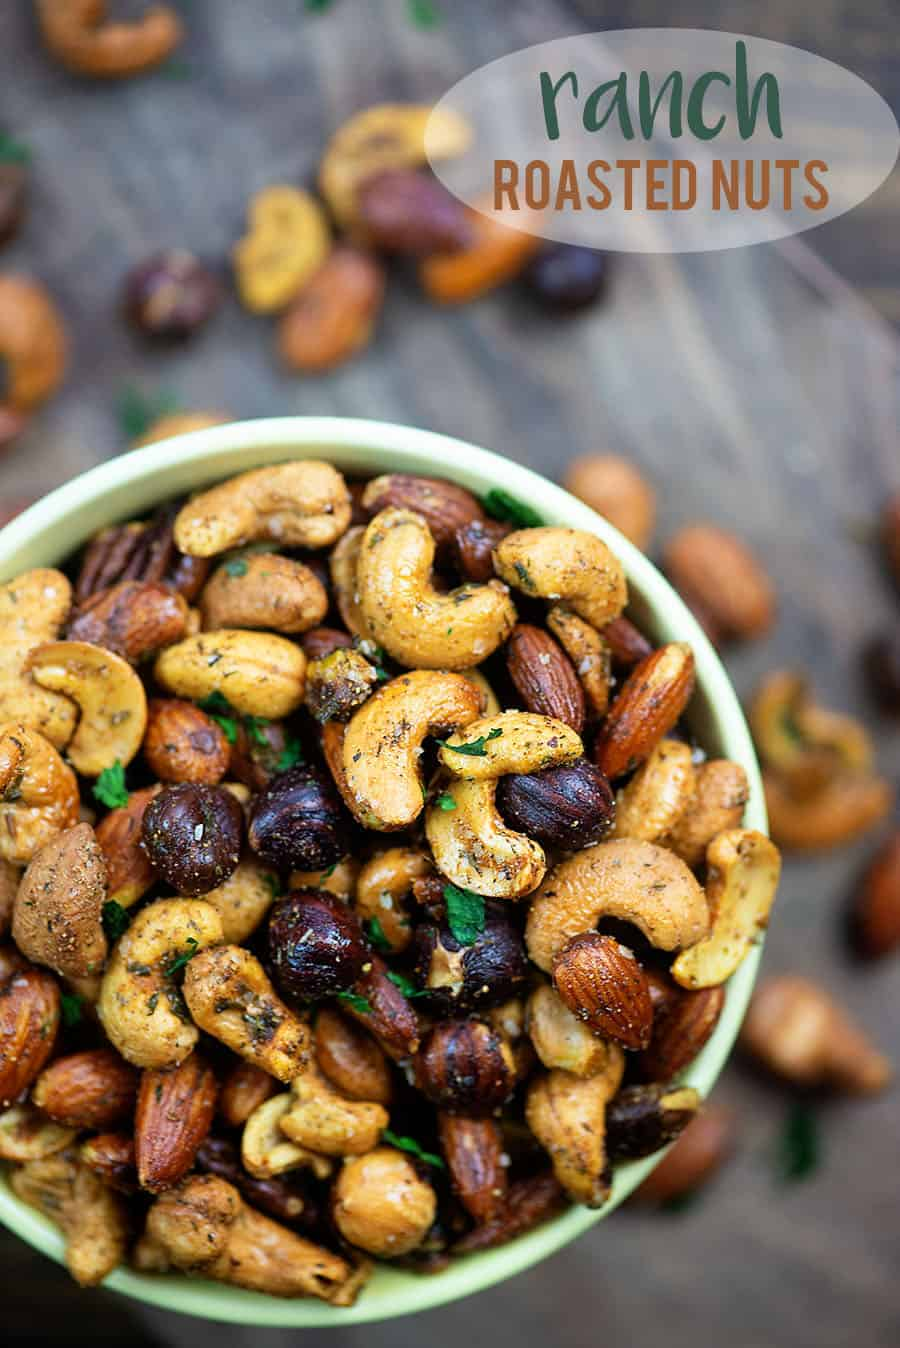 Ranch Roasted Nuts! This little snack is low carb and so simple to make! #lowcarb #keto #easy #recipes